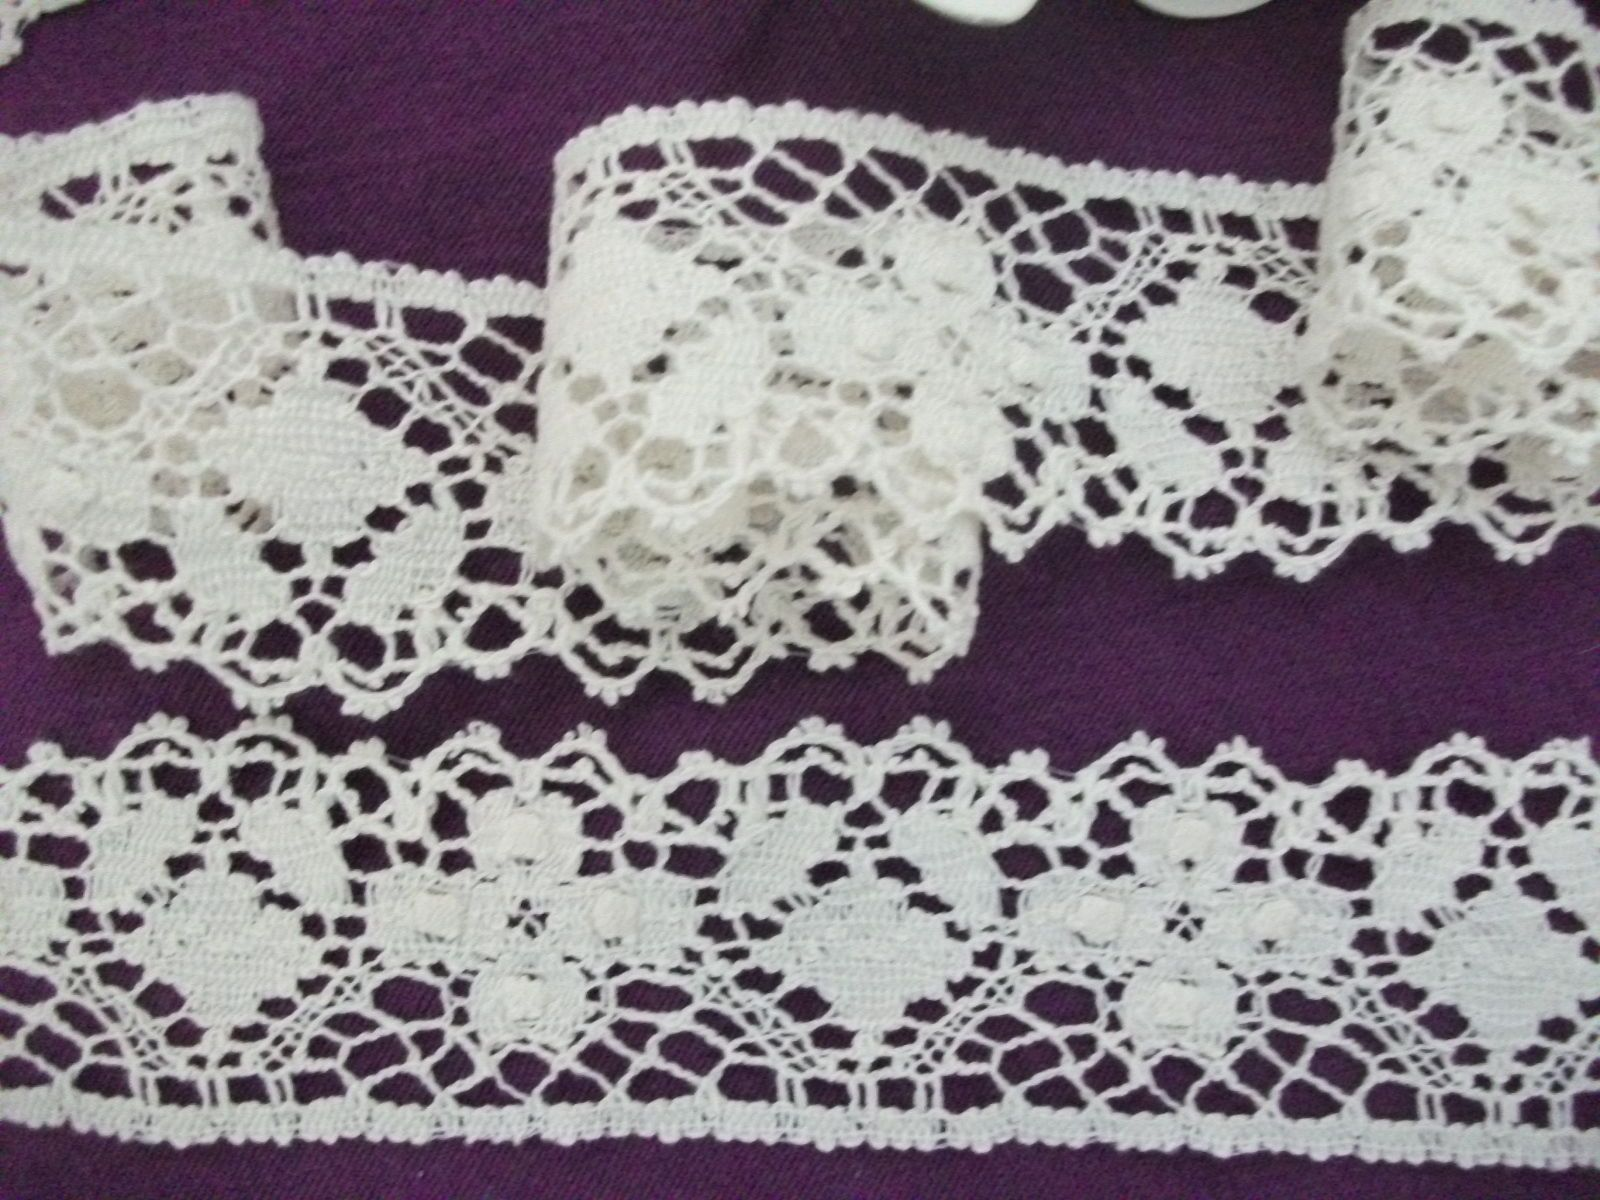 Made In England Genuine Cotton Cluny Lace Ivory Bone